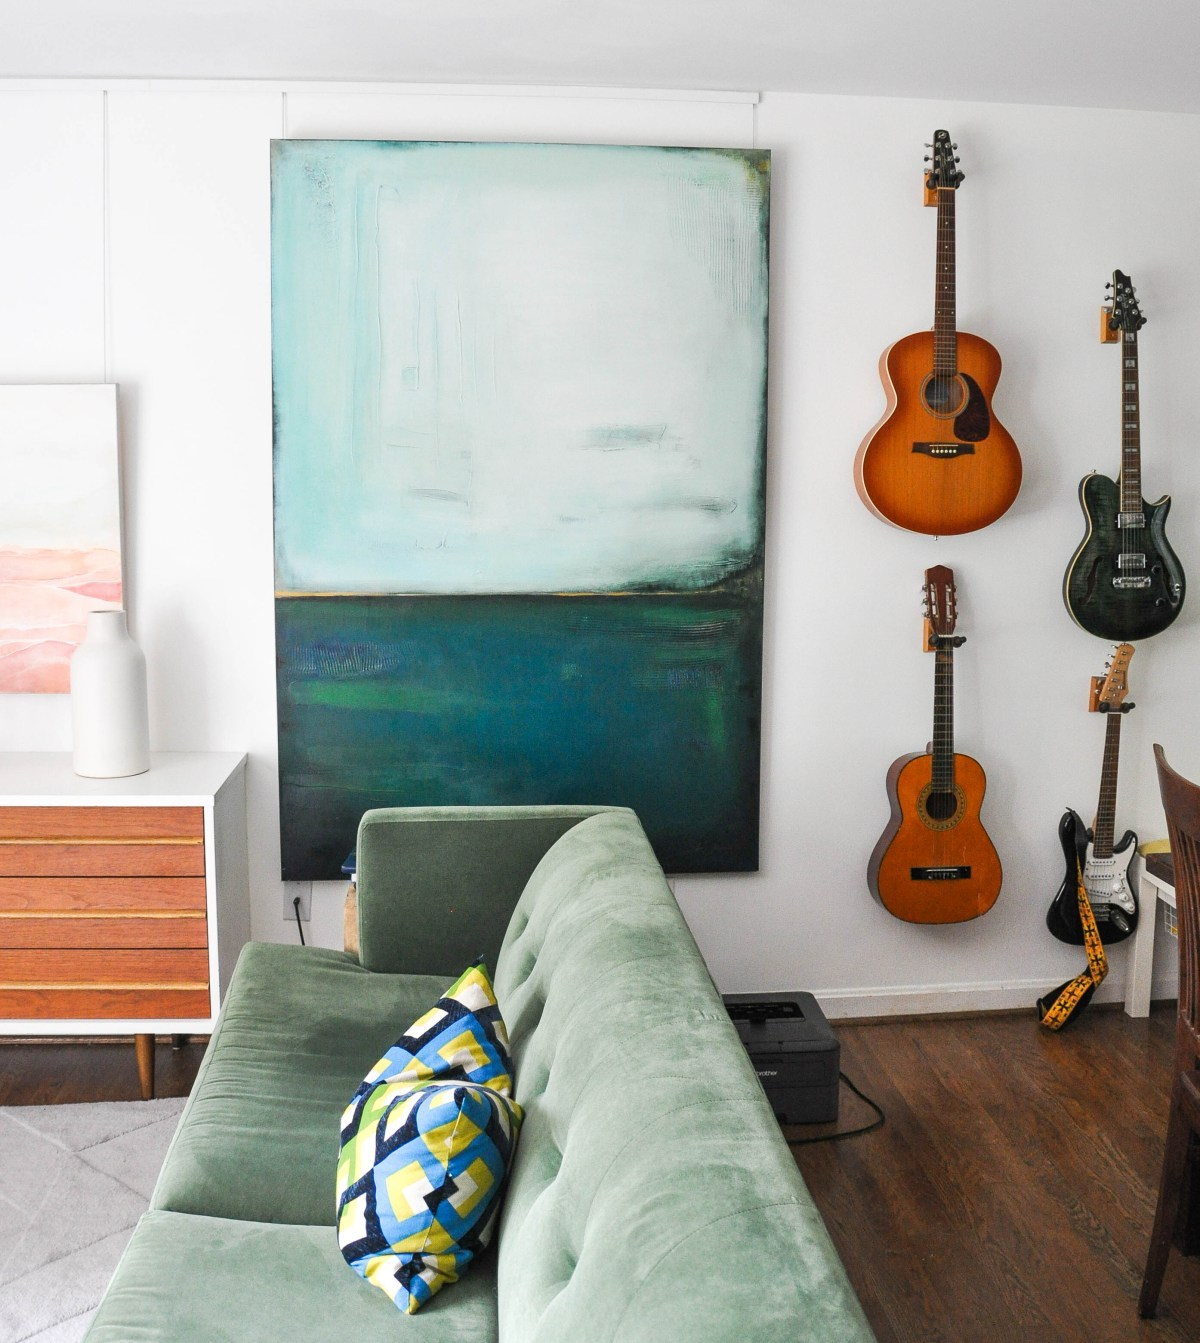 A display of four guitars displayed hanging next to a large abstract painting creates unique wall decor.